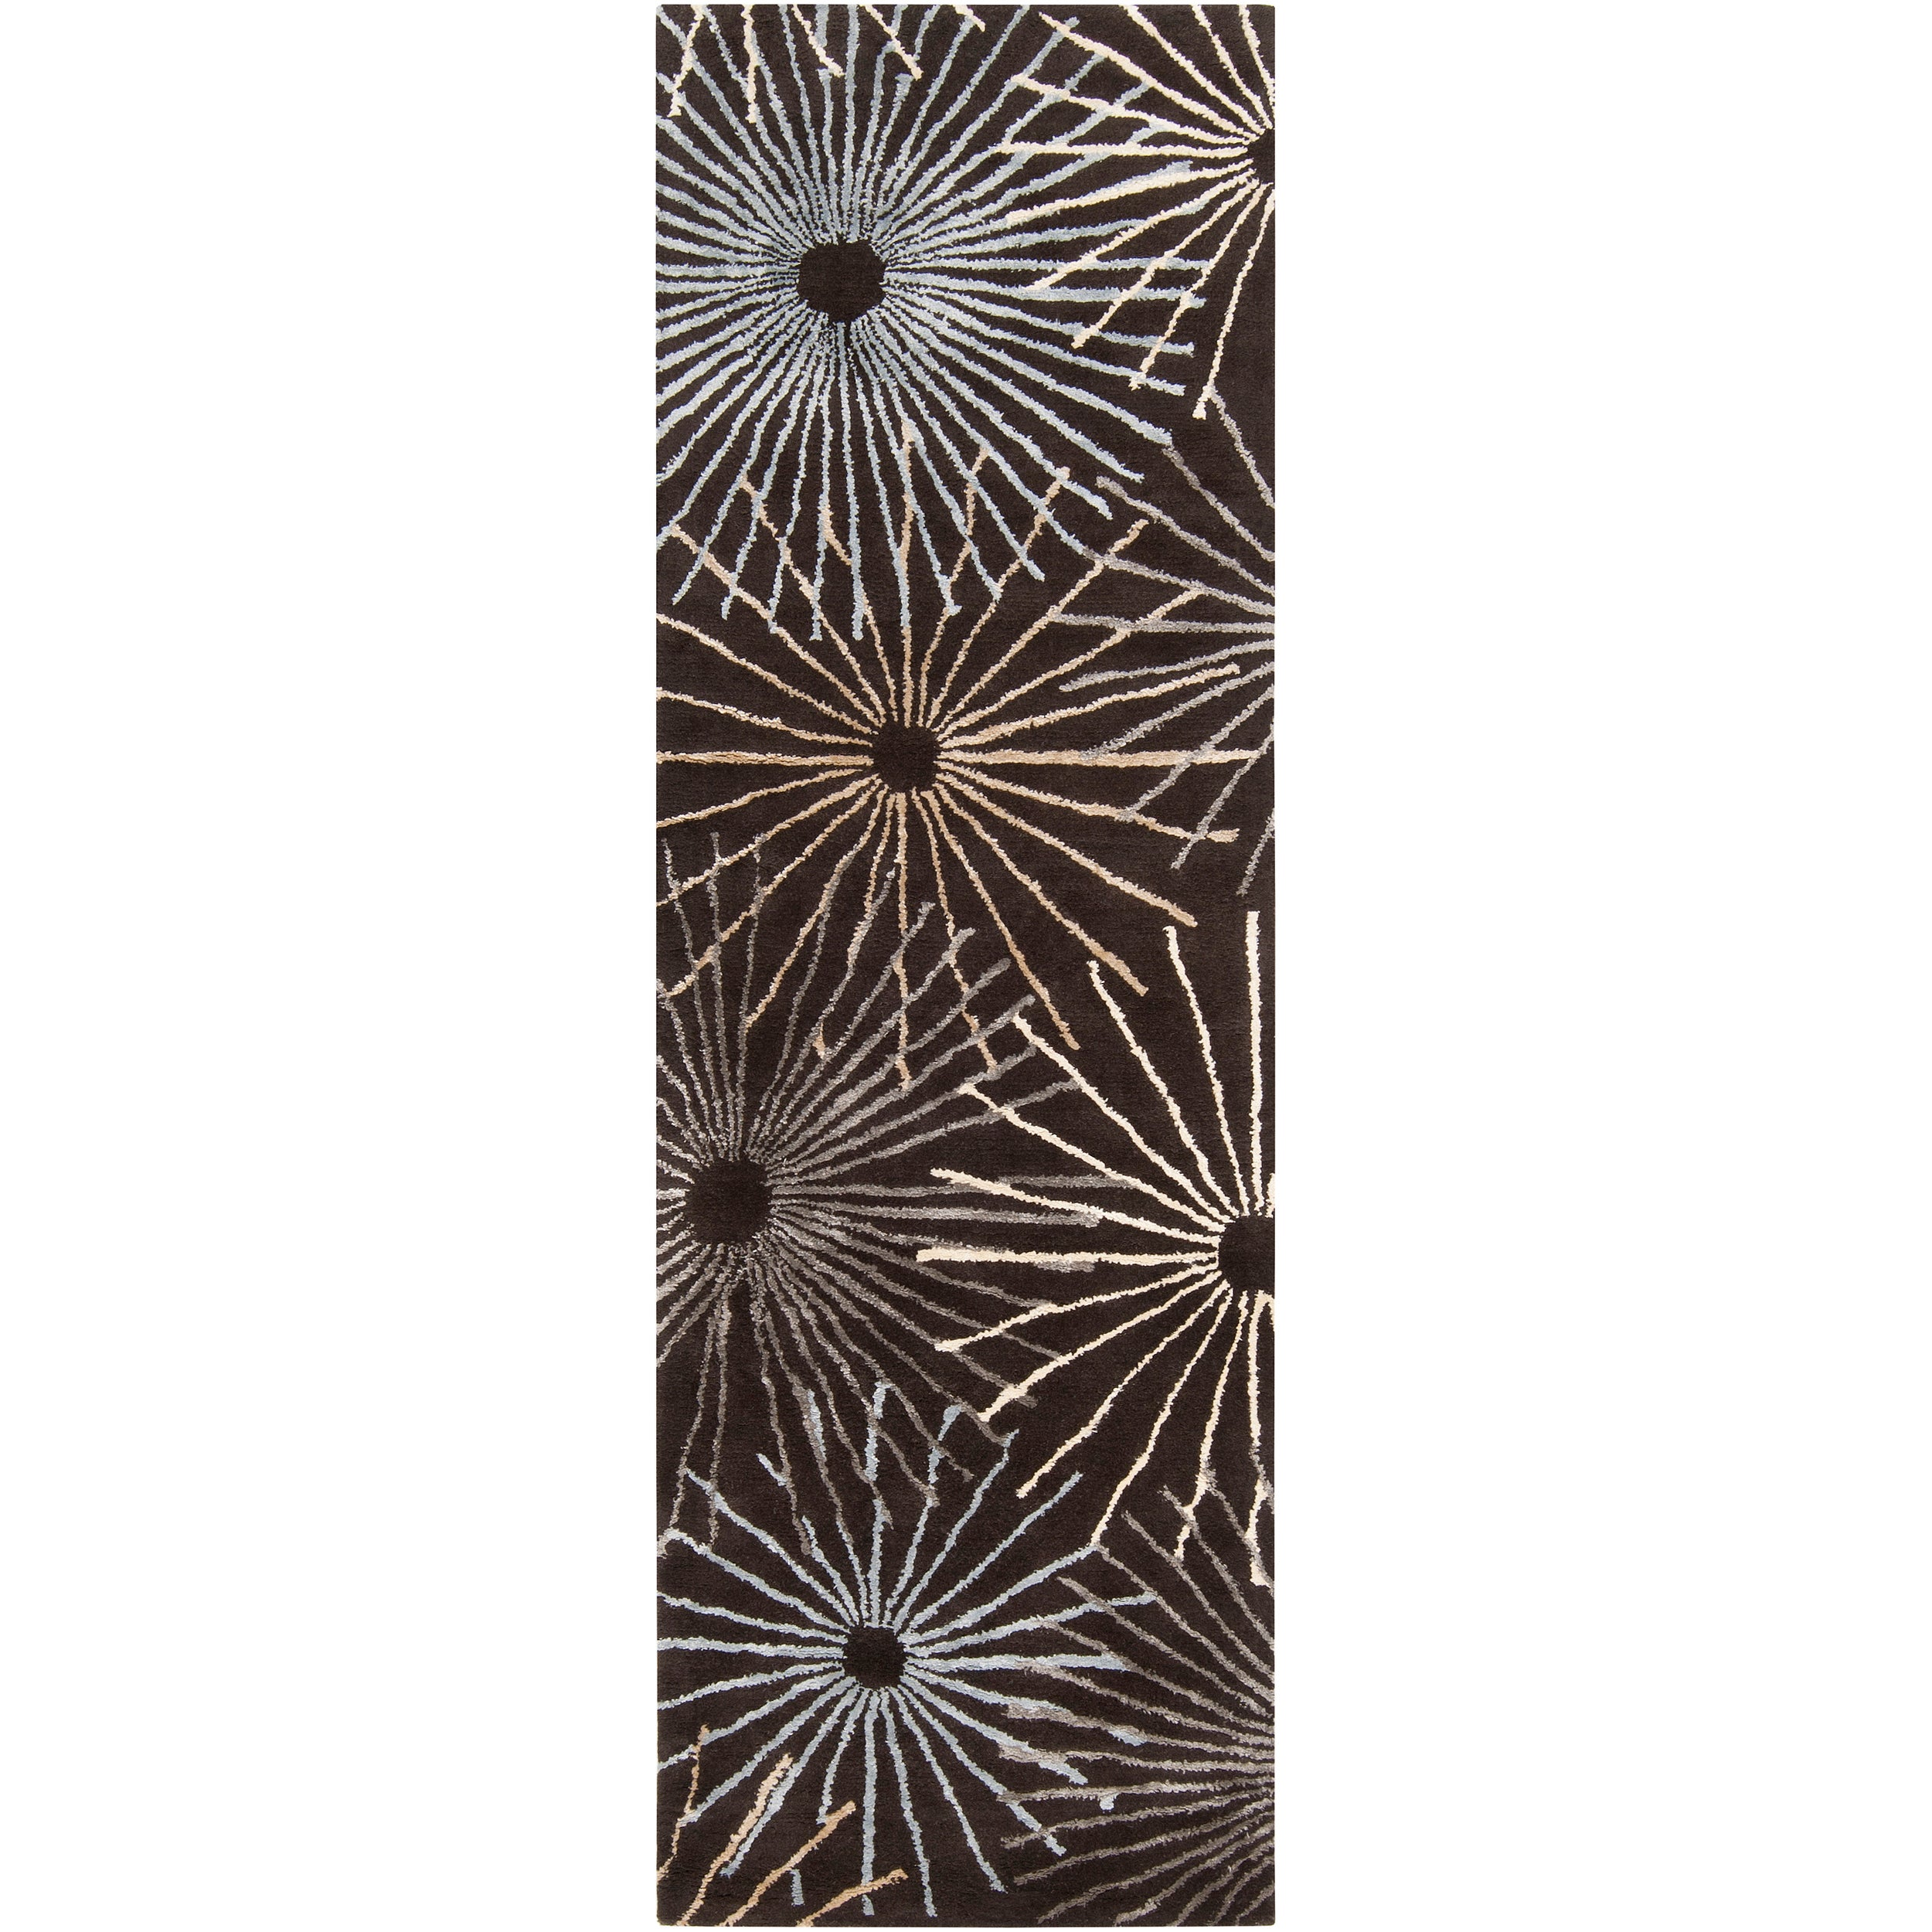 Hand-tufted Brown Essence New Zealand Wool/ Viscose Rug (2'6 x8')